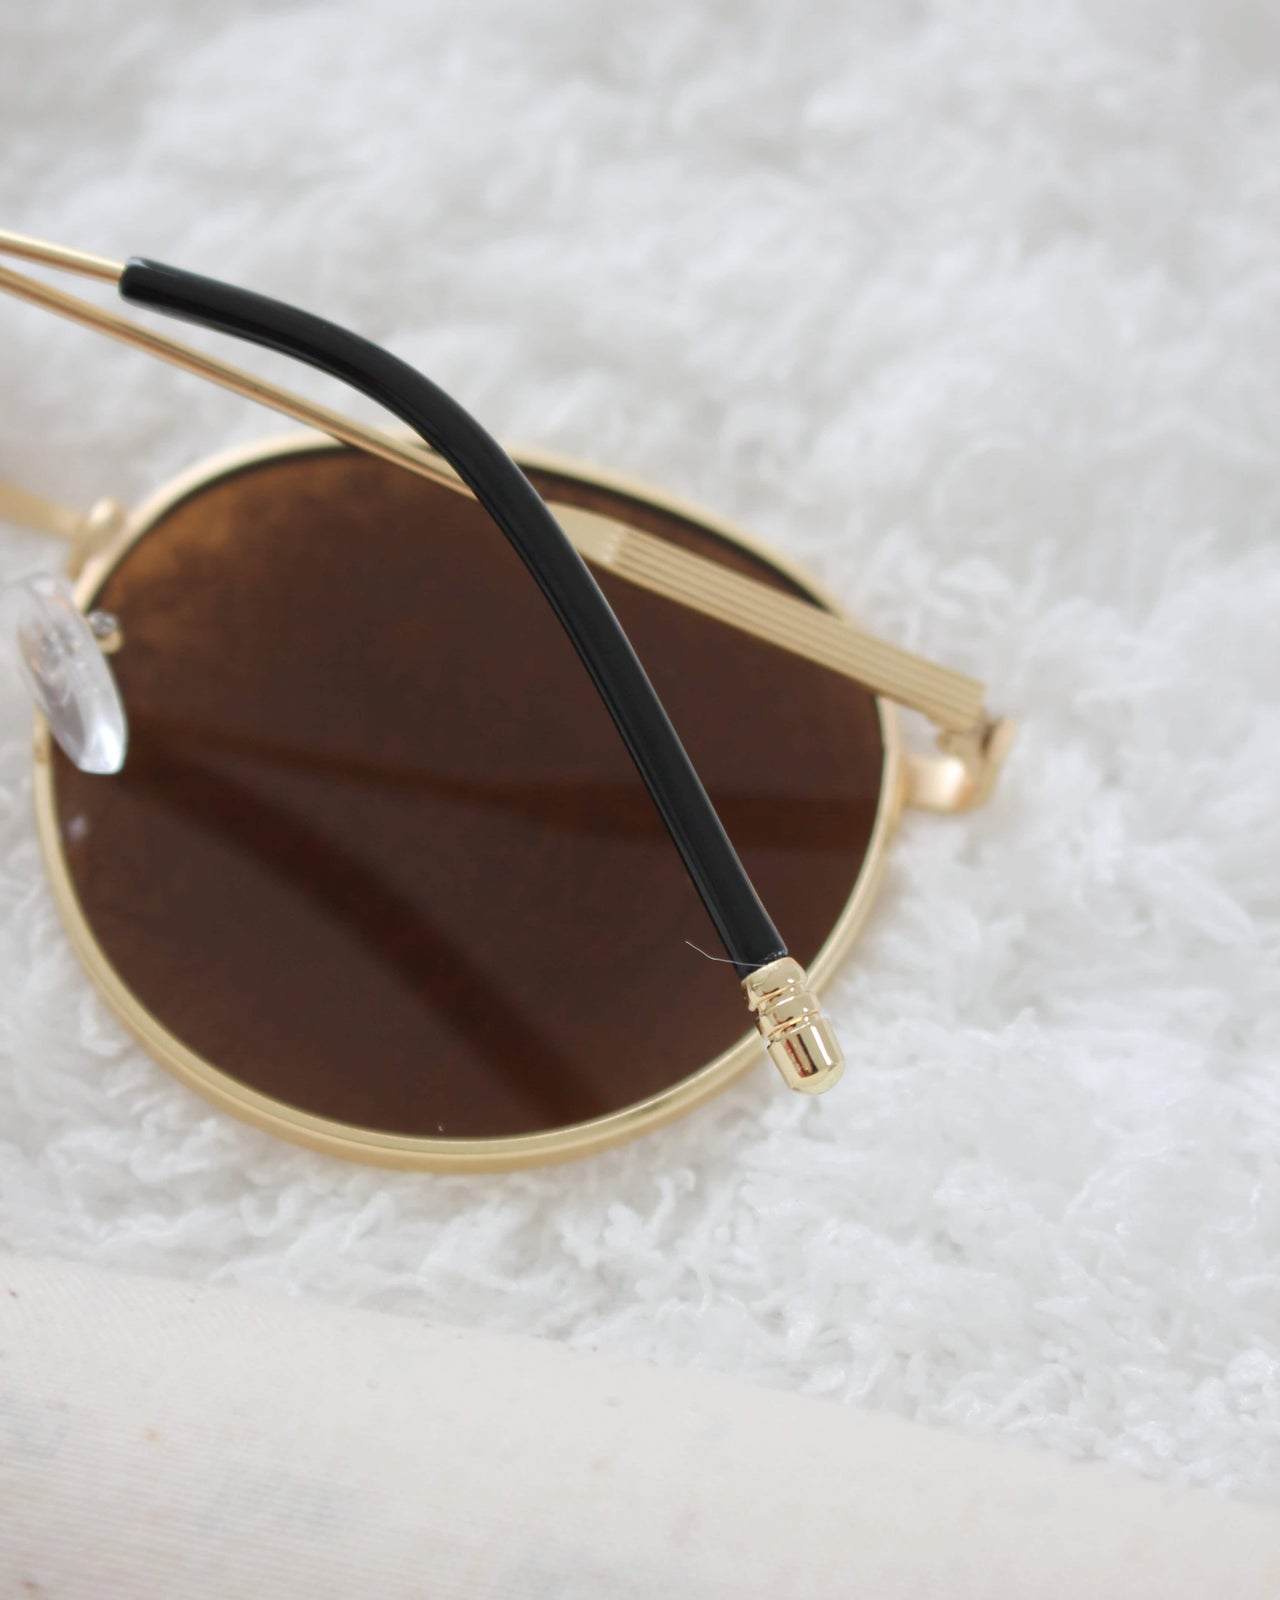 Brownish Sunglass - LovelyMadness Clothing Online Fashion Malaysia